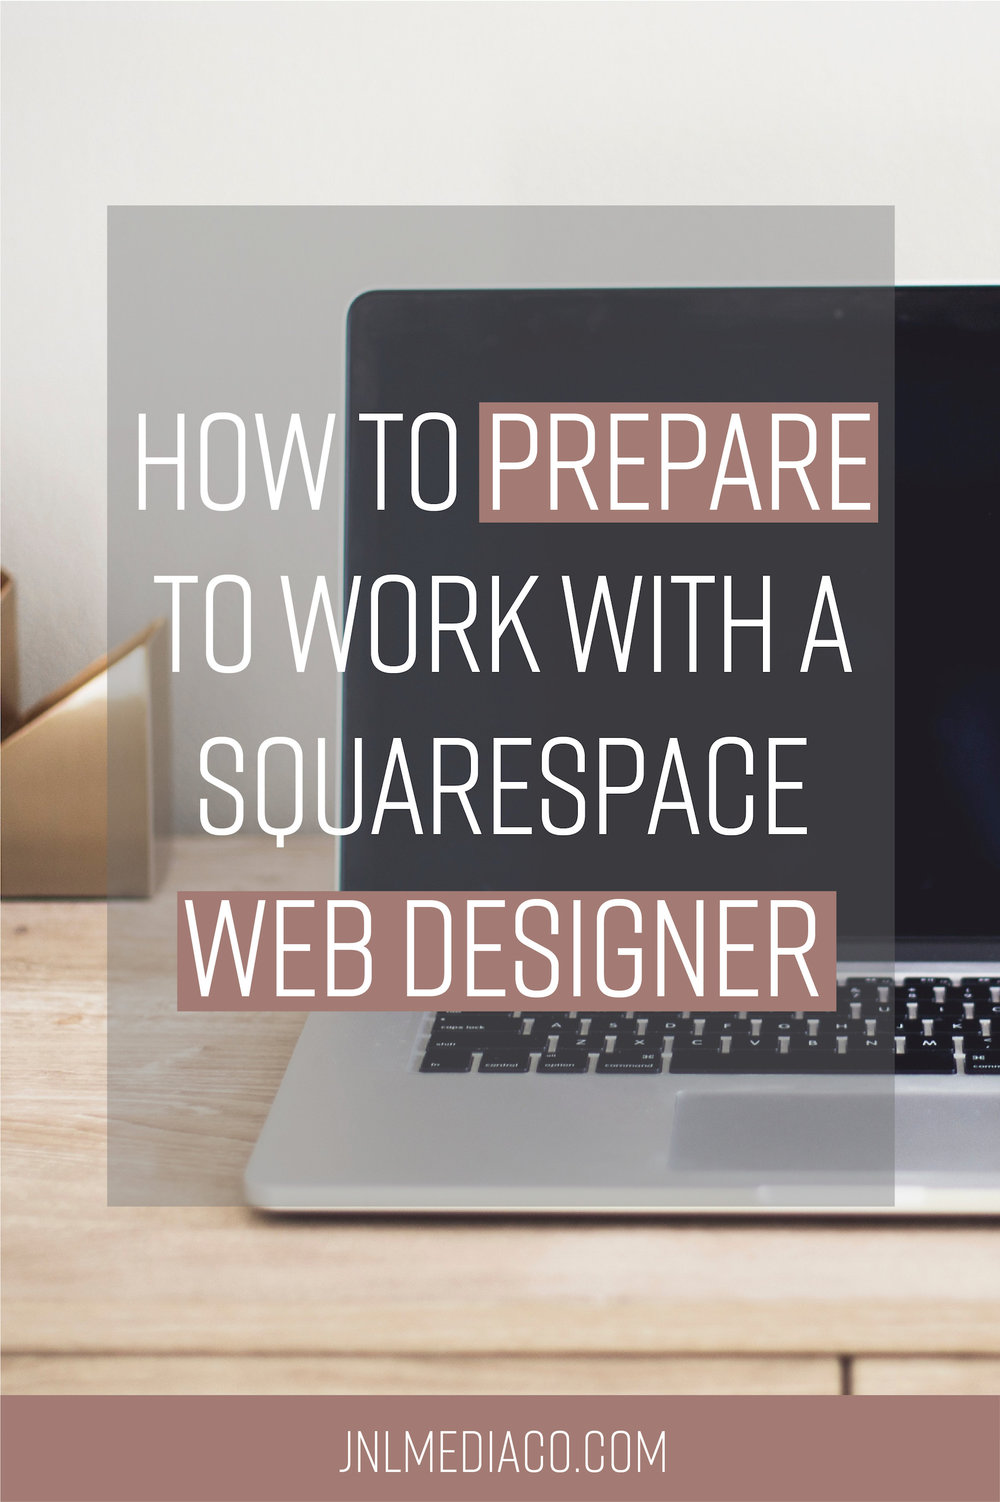 So you've decided to invest in a Squarespace website designer and want to make sure you're as ready as can be? First of all, congrats! I'm so excited that you decided to invest in taking your business to the next level! It's a big step so I want to make sure you are prepared so you get the most out of working with your designer.